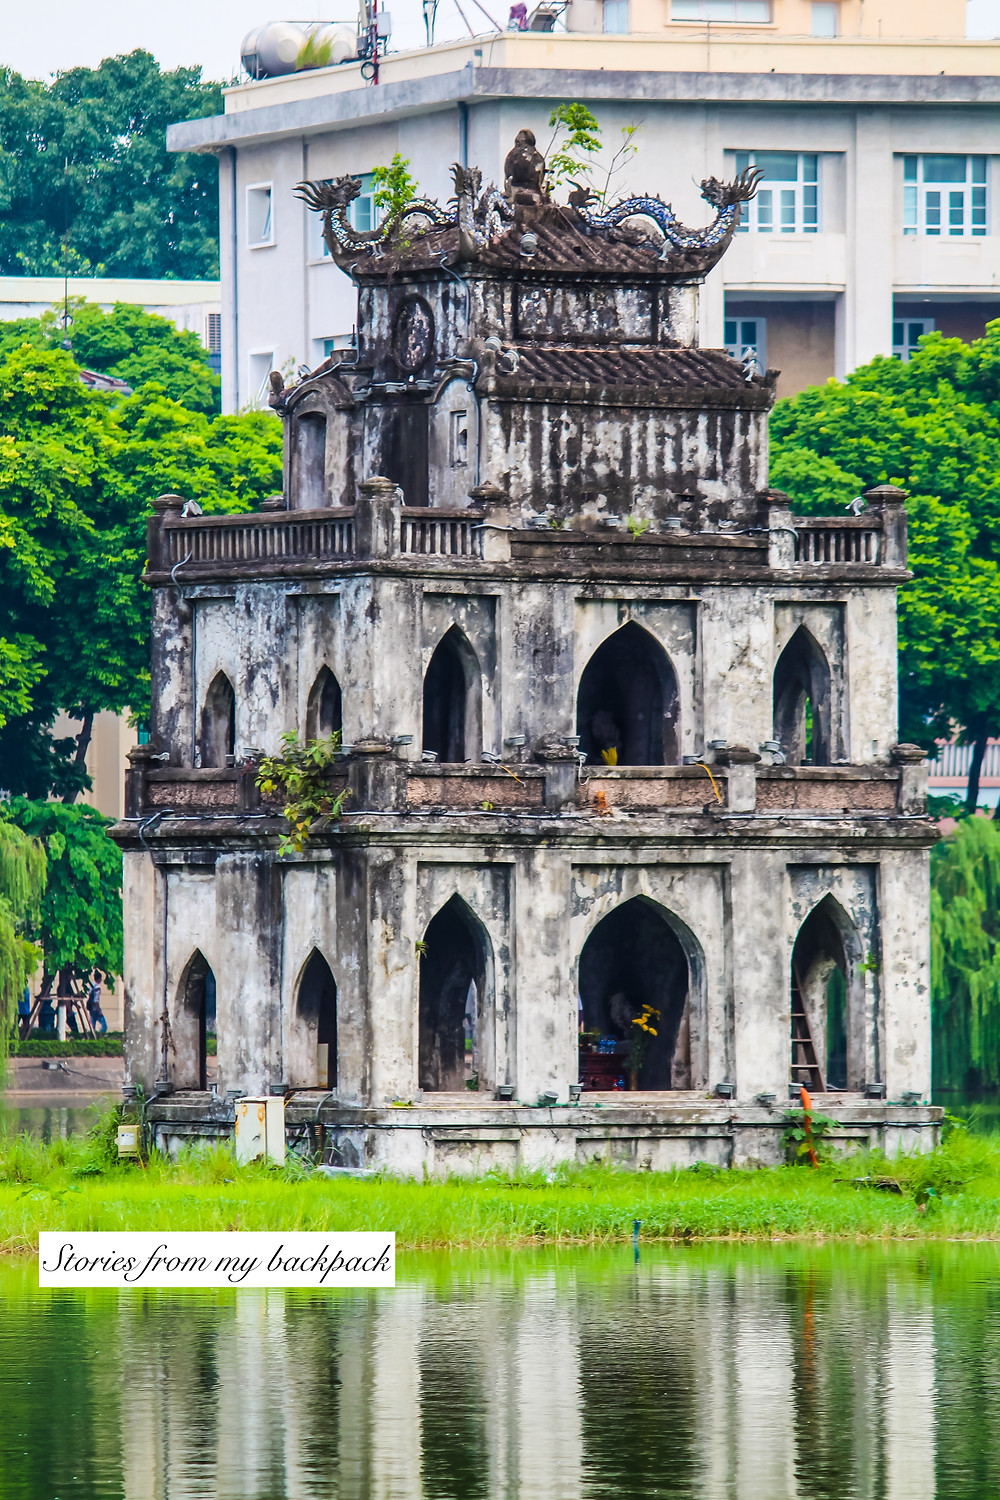 Hoan Kiem Lake, Turtle pagoda, legend of Hoan Kiem lake, history of  Hoan Kiem lake, history of Hanoi, things to do in Hanoi, sightseeing in Hanoi, Hanoi old quarter